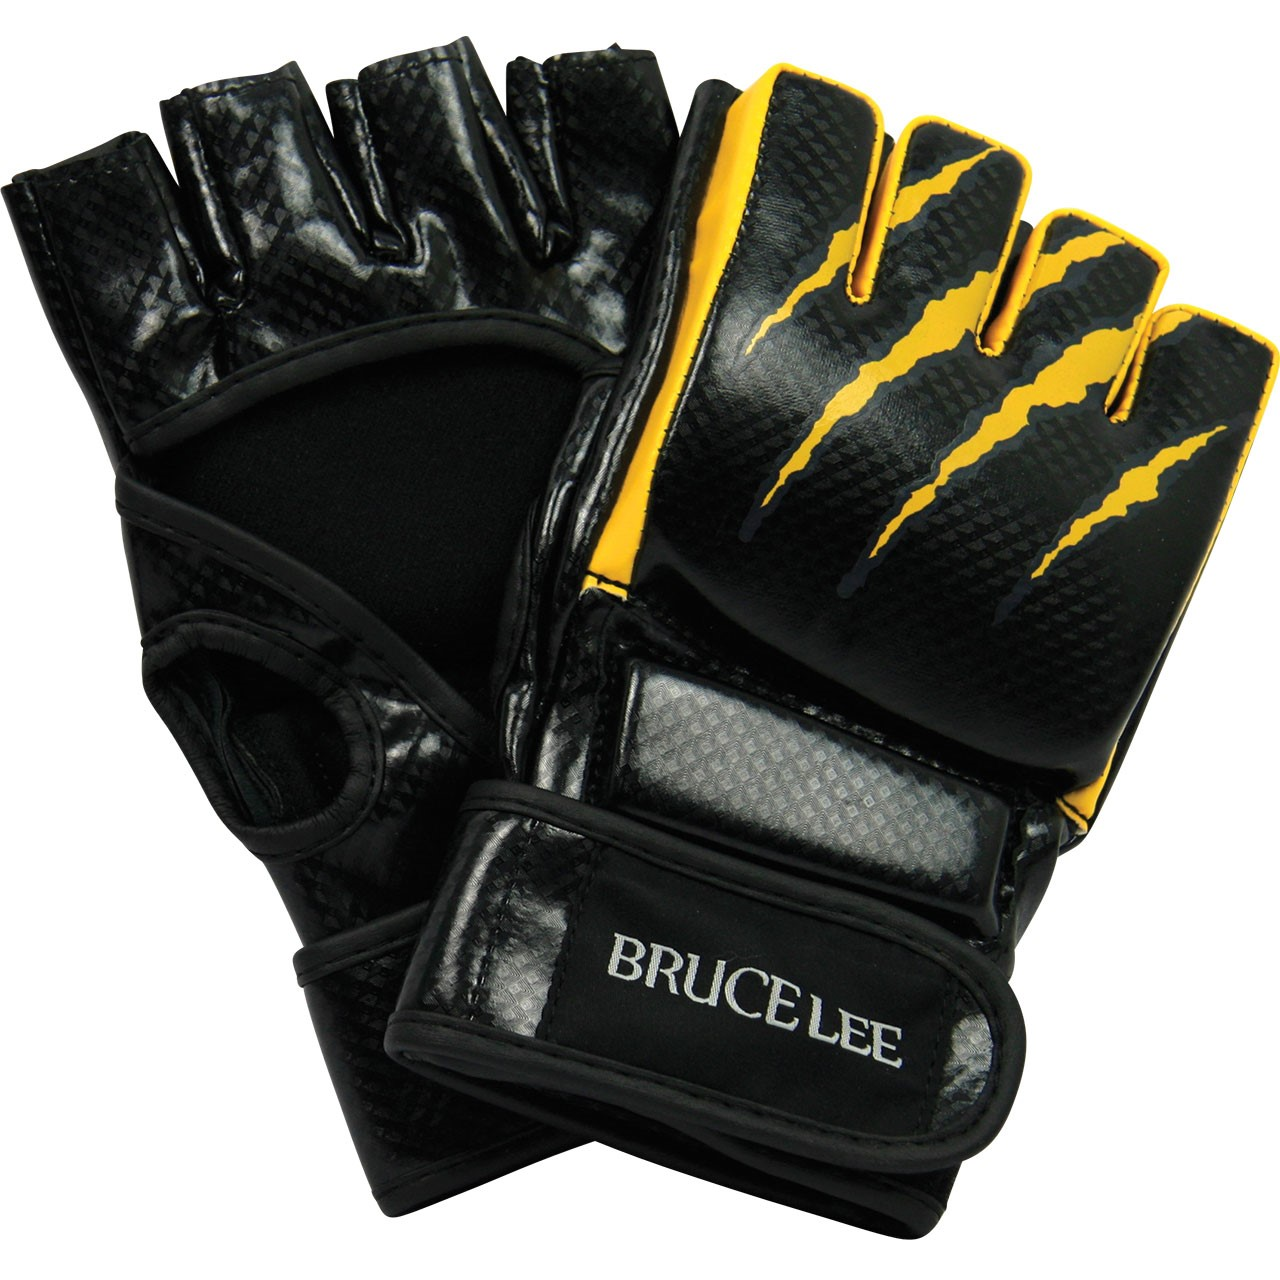 ac14319fc0e MMA rukavice XL BRUCE LEE Signature